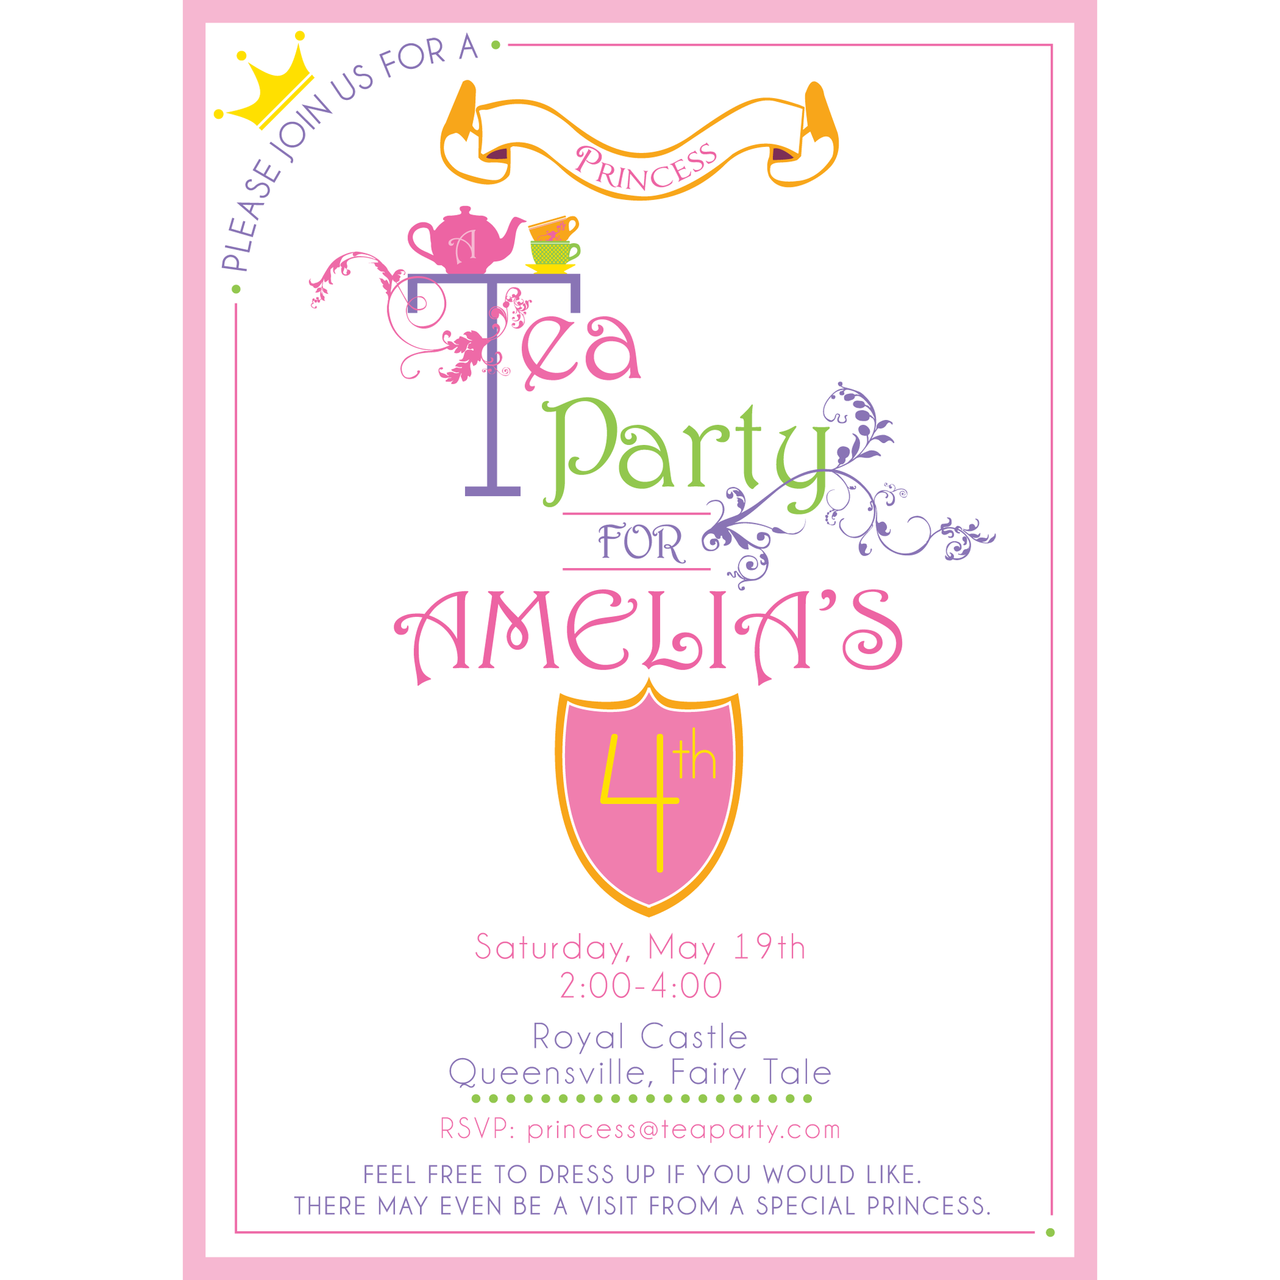 graphic about Tea Party Printable called Princess Tea Get together printable Birthday Invitation as a result of Requirements and Needs